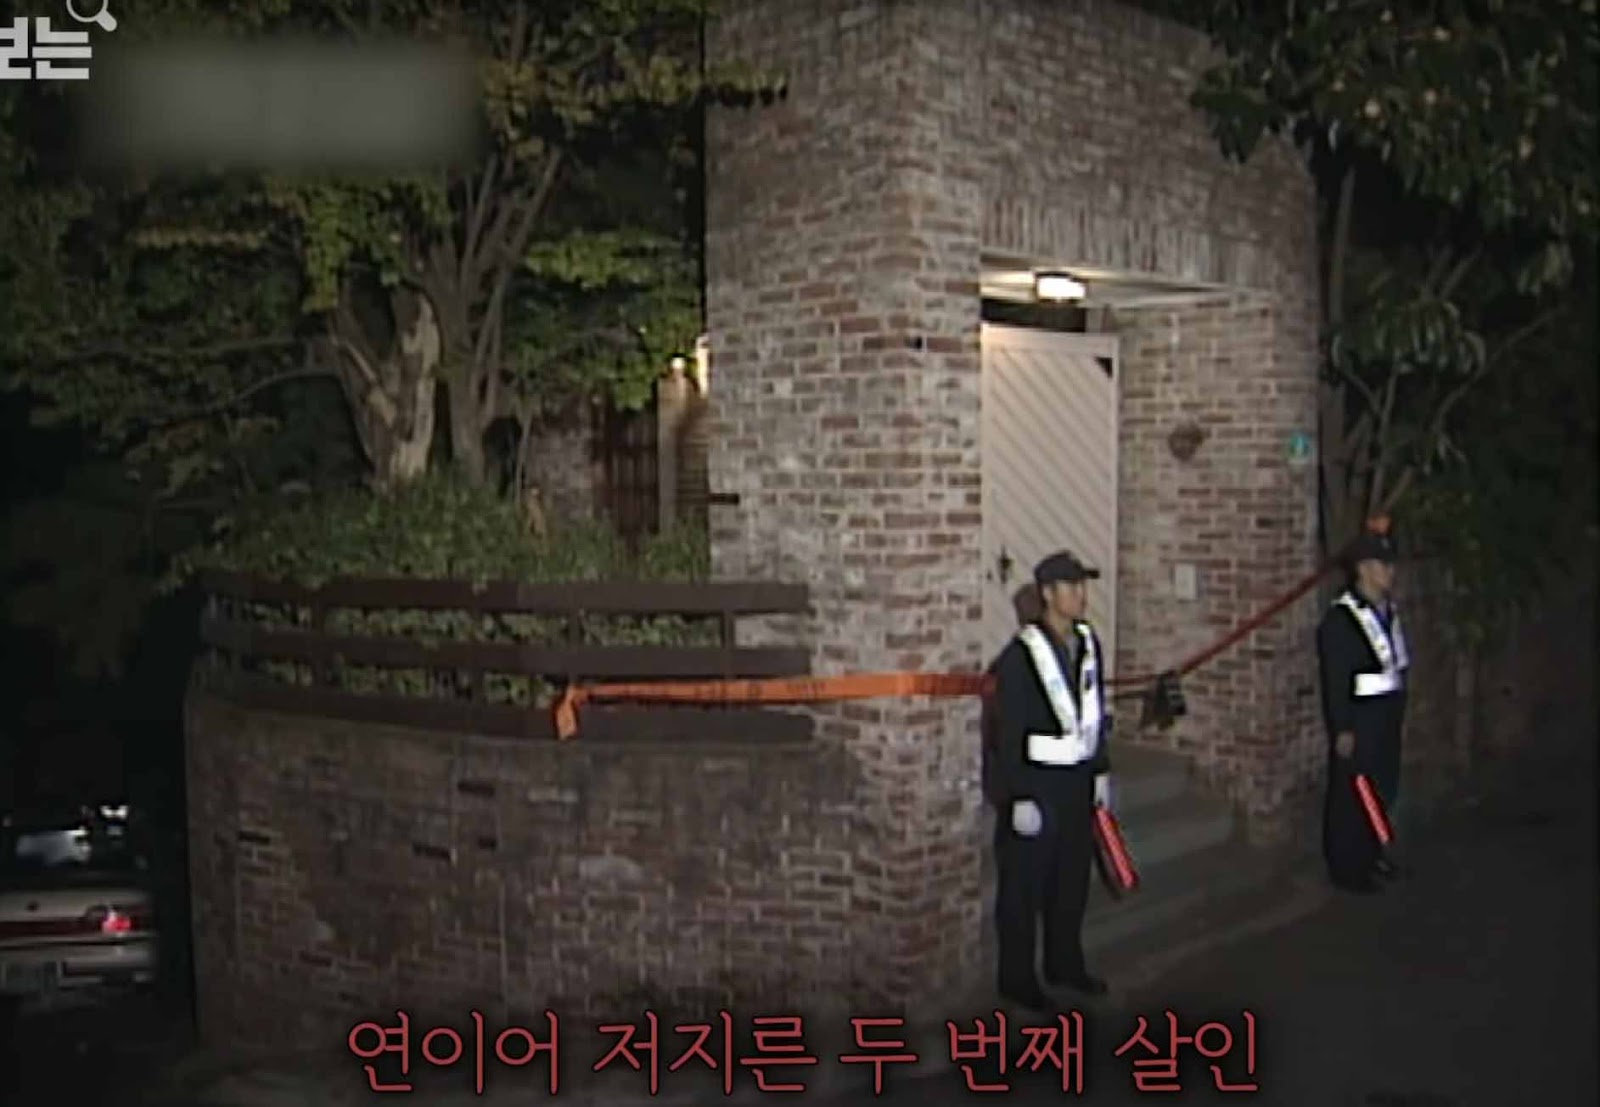 News footage during the investigation